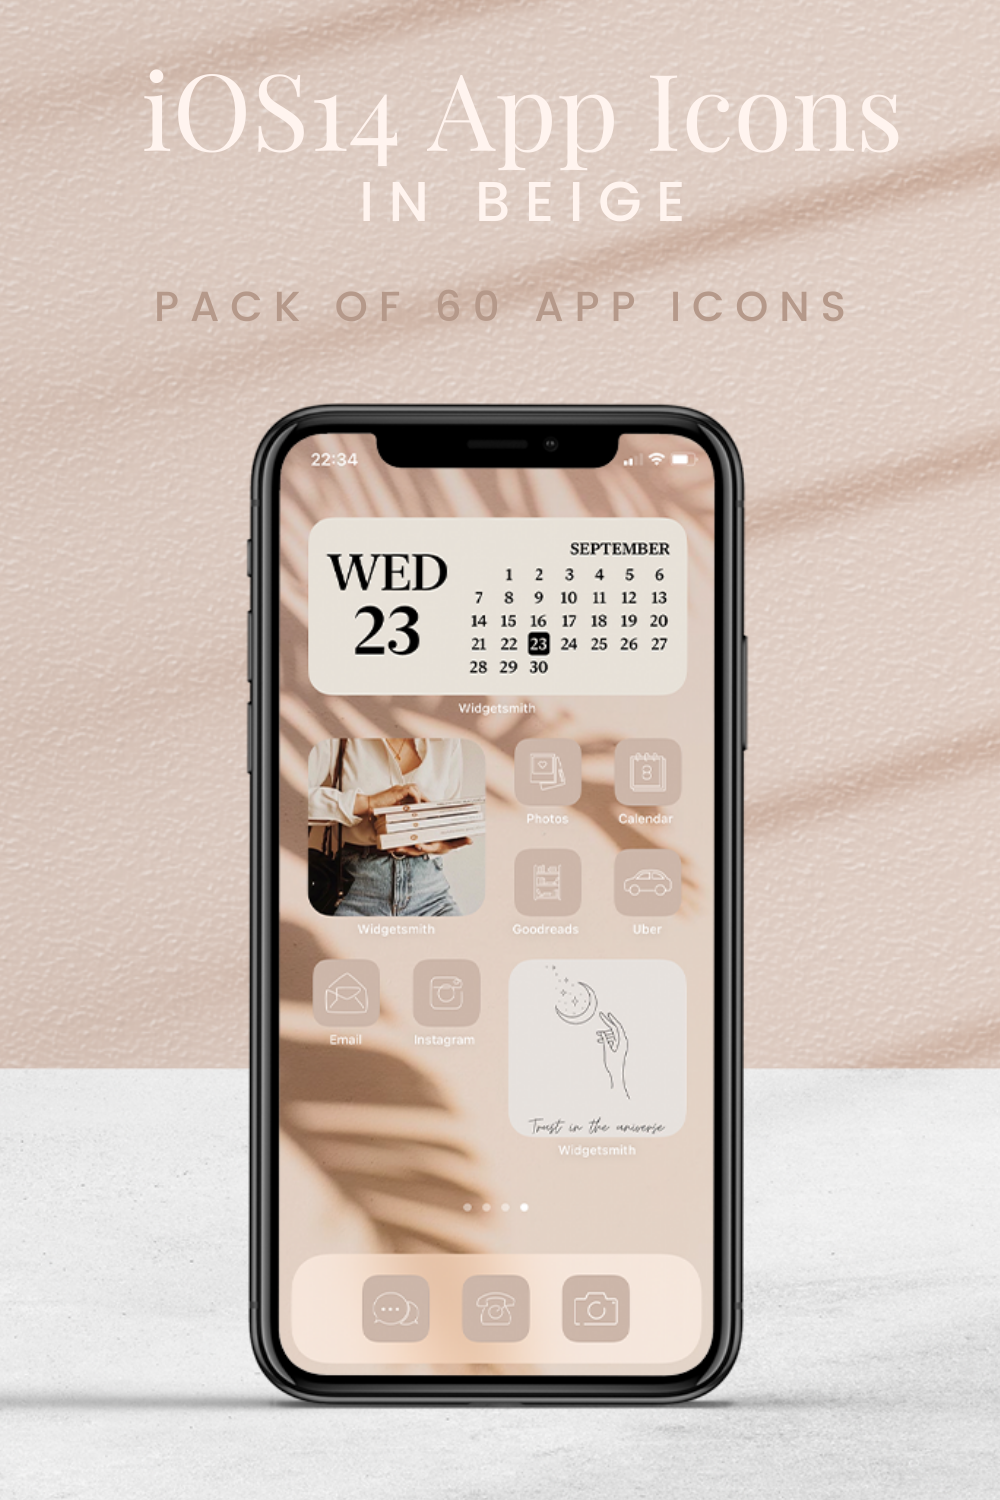 App Icon Bundle Beige For Iphone Ios 14 Instant Download In 2020 App Icon Iphone Organization Homescreen Iphone